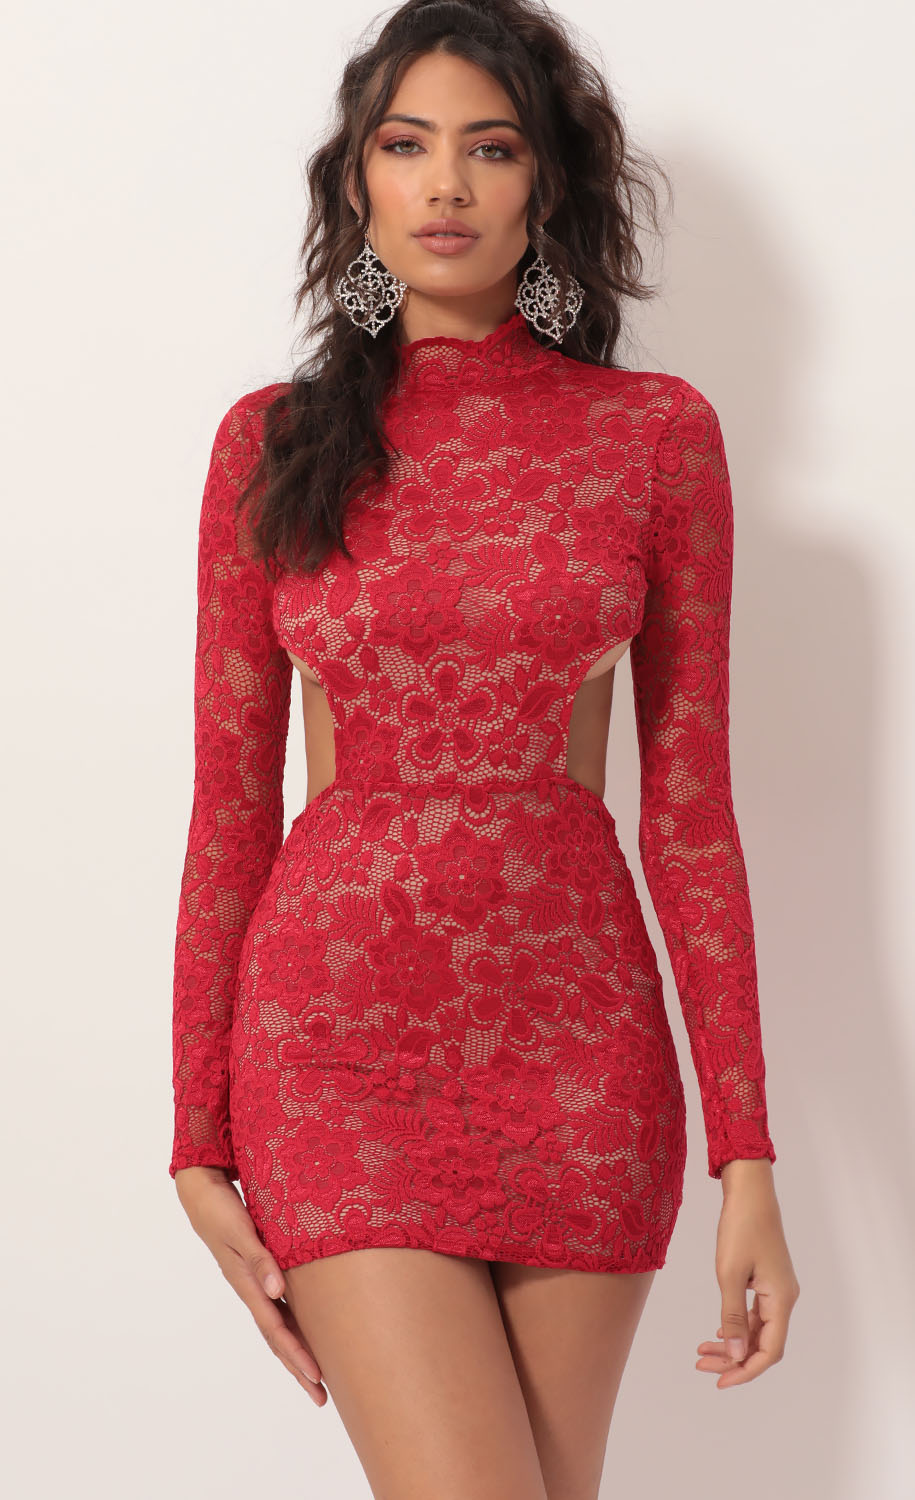 Wild Night Lace Cutout Dress in Red Nude